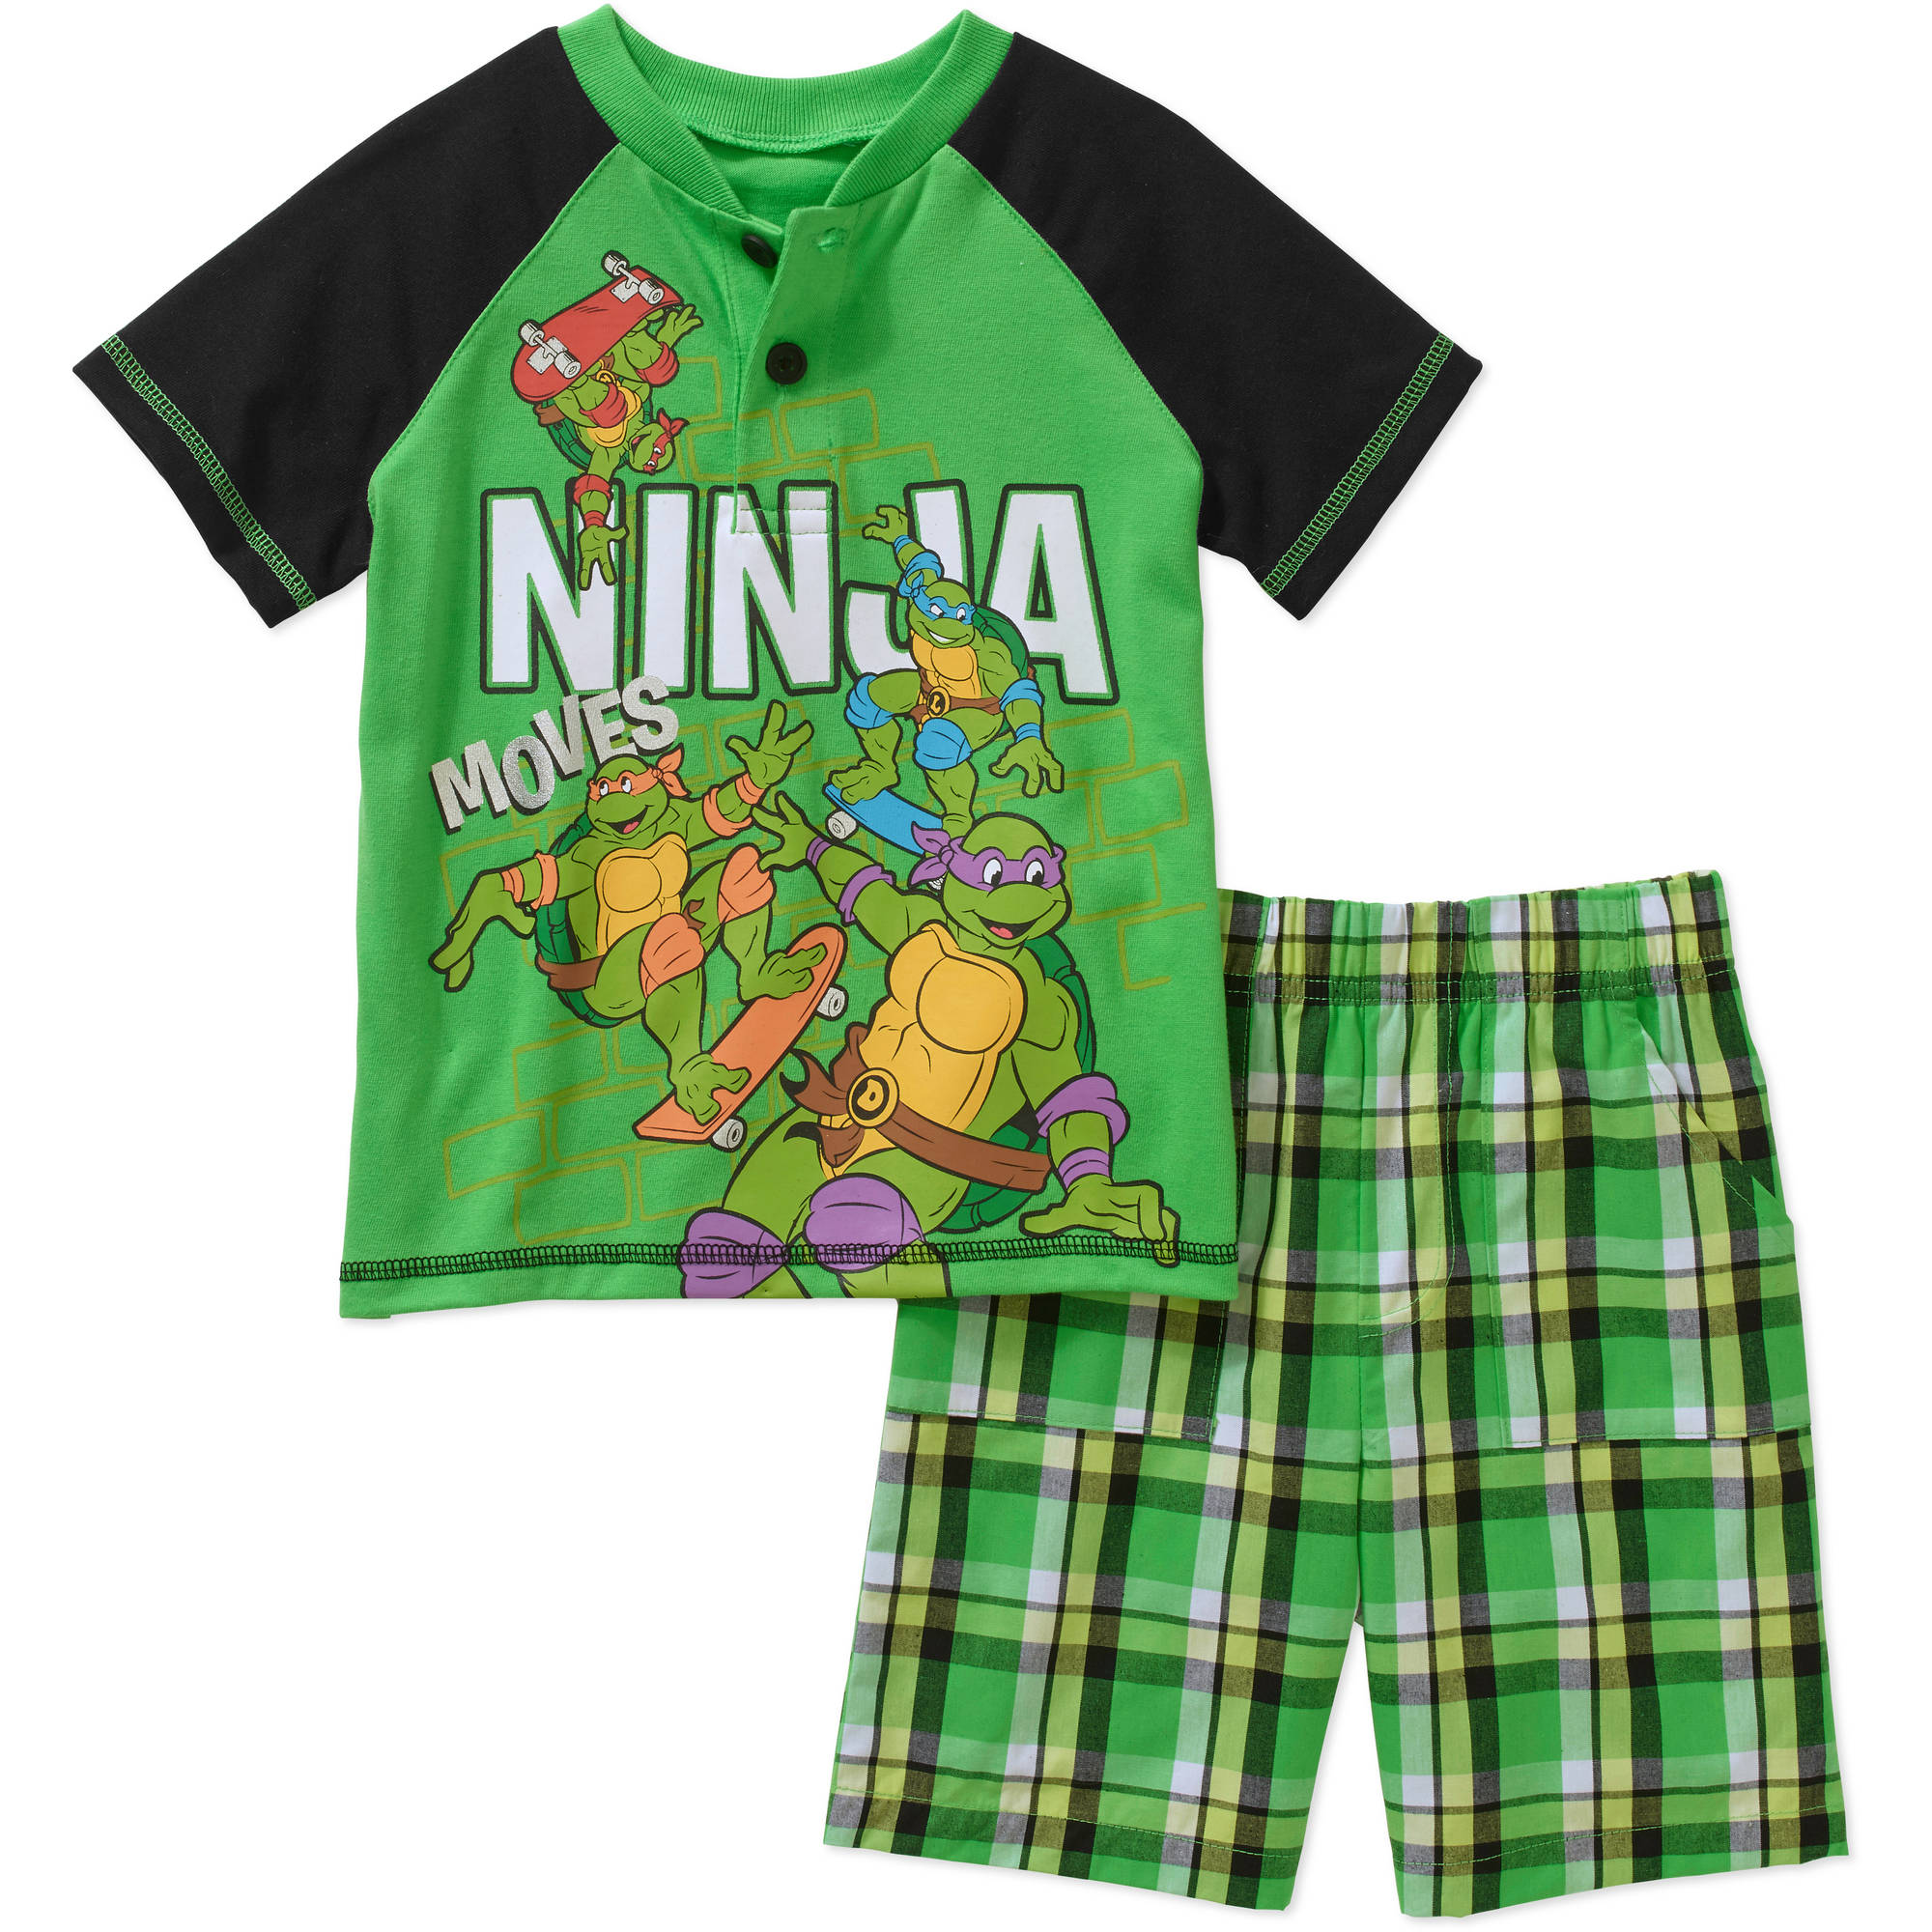 Teenage Mutant Ninja Turtles Toddler Boys' Graphic Polo Tee Shirt and Shorts Outfit Set